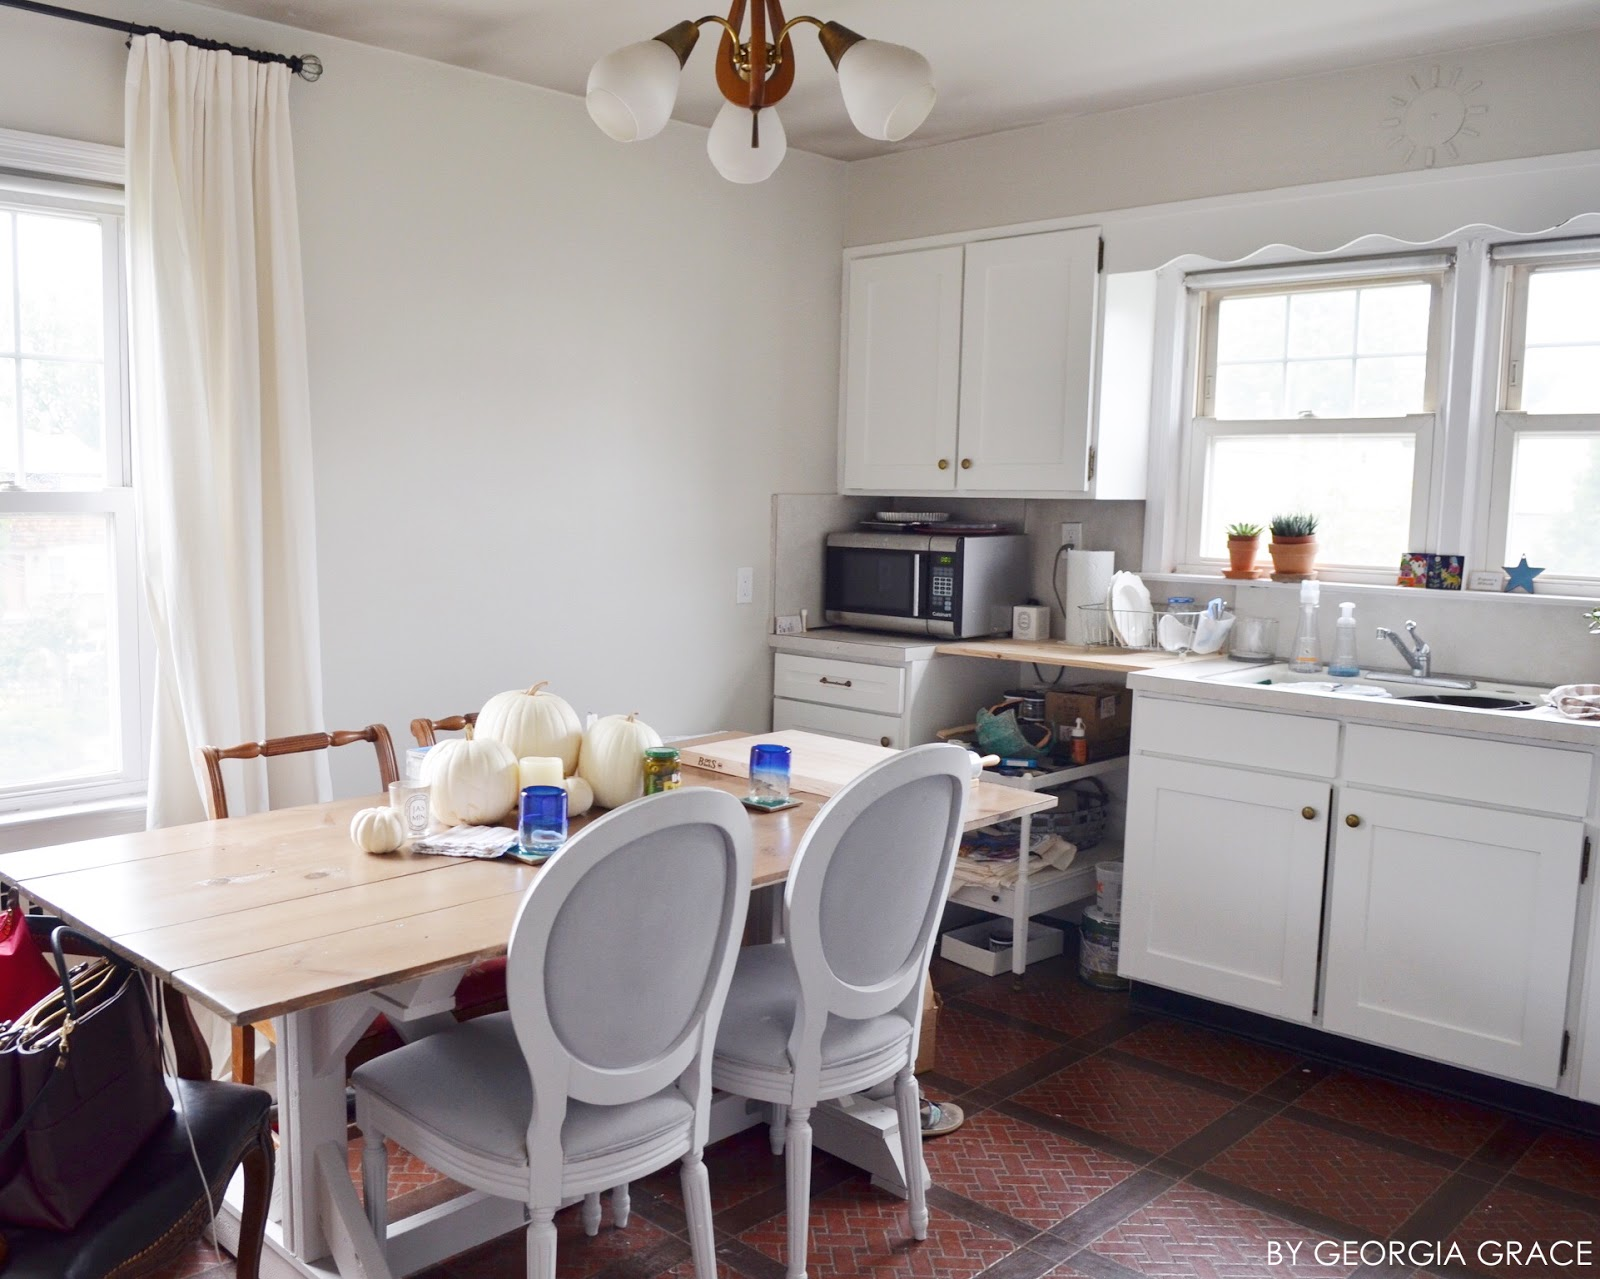 Kitchen: New Painted Cabinets & Walls